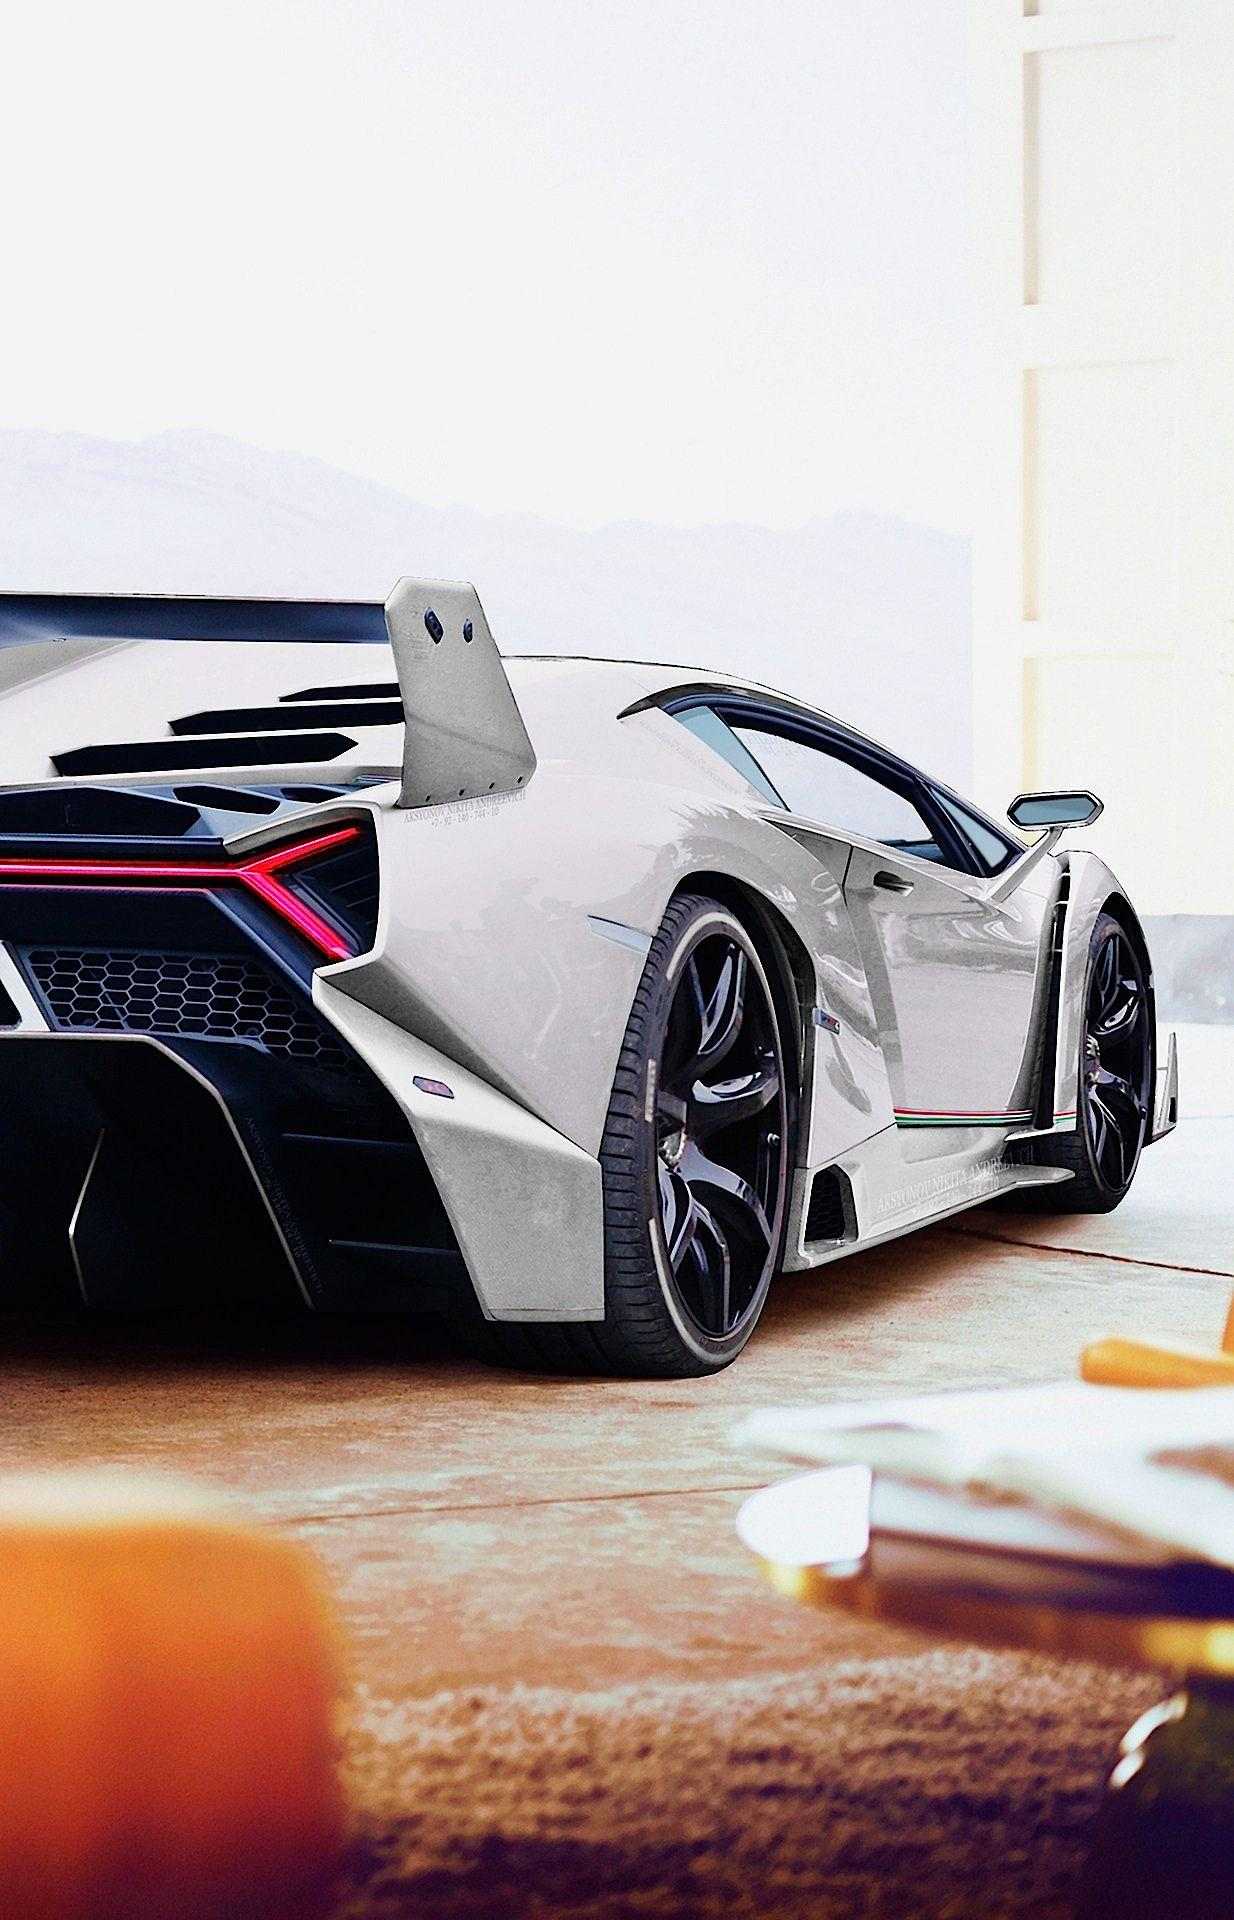 Lamborghini Veneno Hd Mobile Wallpapers Wallpaper Cave